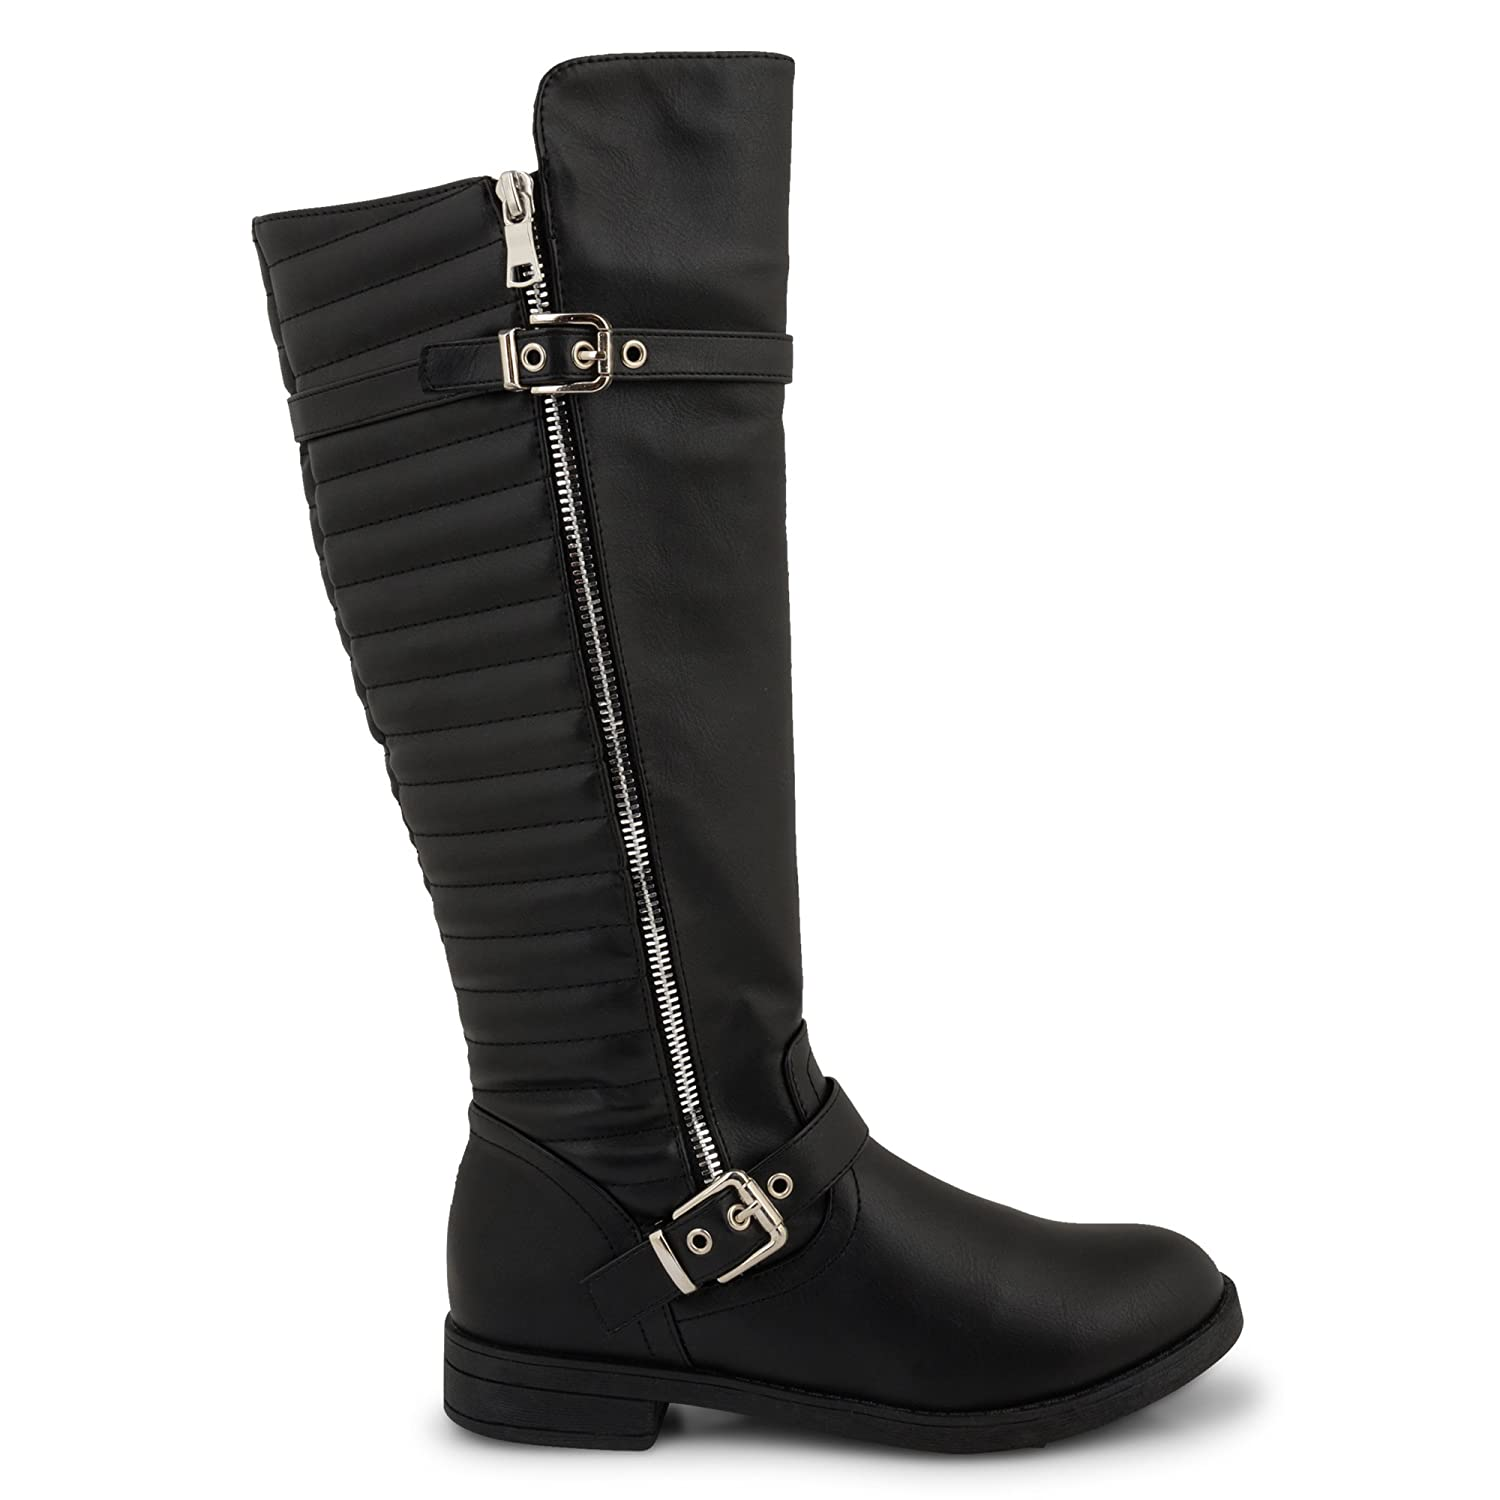 64c509a2071 Womens Ladies Low Flat Heel Knee High Wide Calf Elasticated Stretch Boots  Black Zipped Buckle Shoe Size UK 3 9  Amazon.co.uk  Shoes   Bags